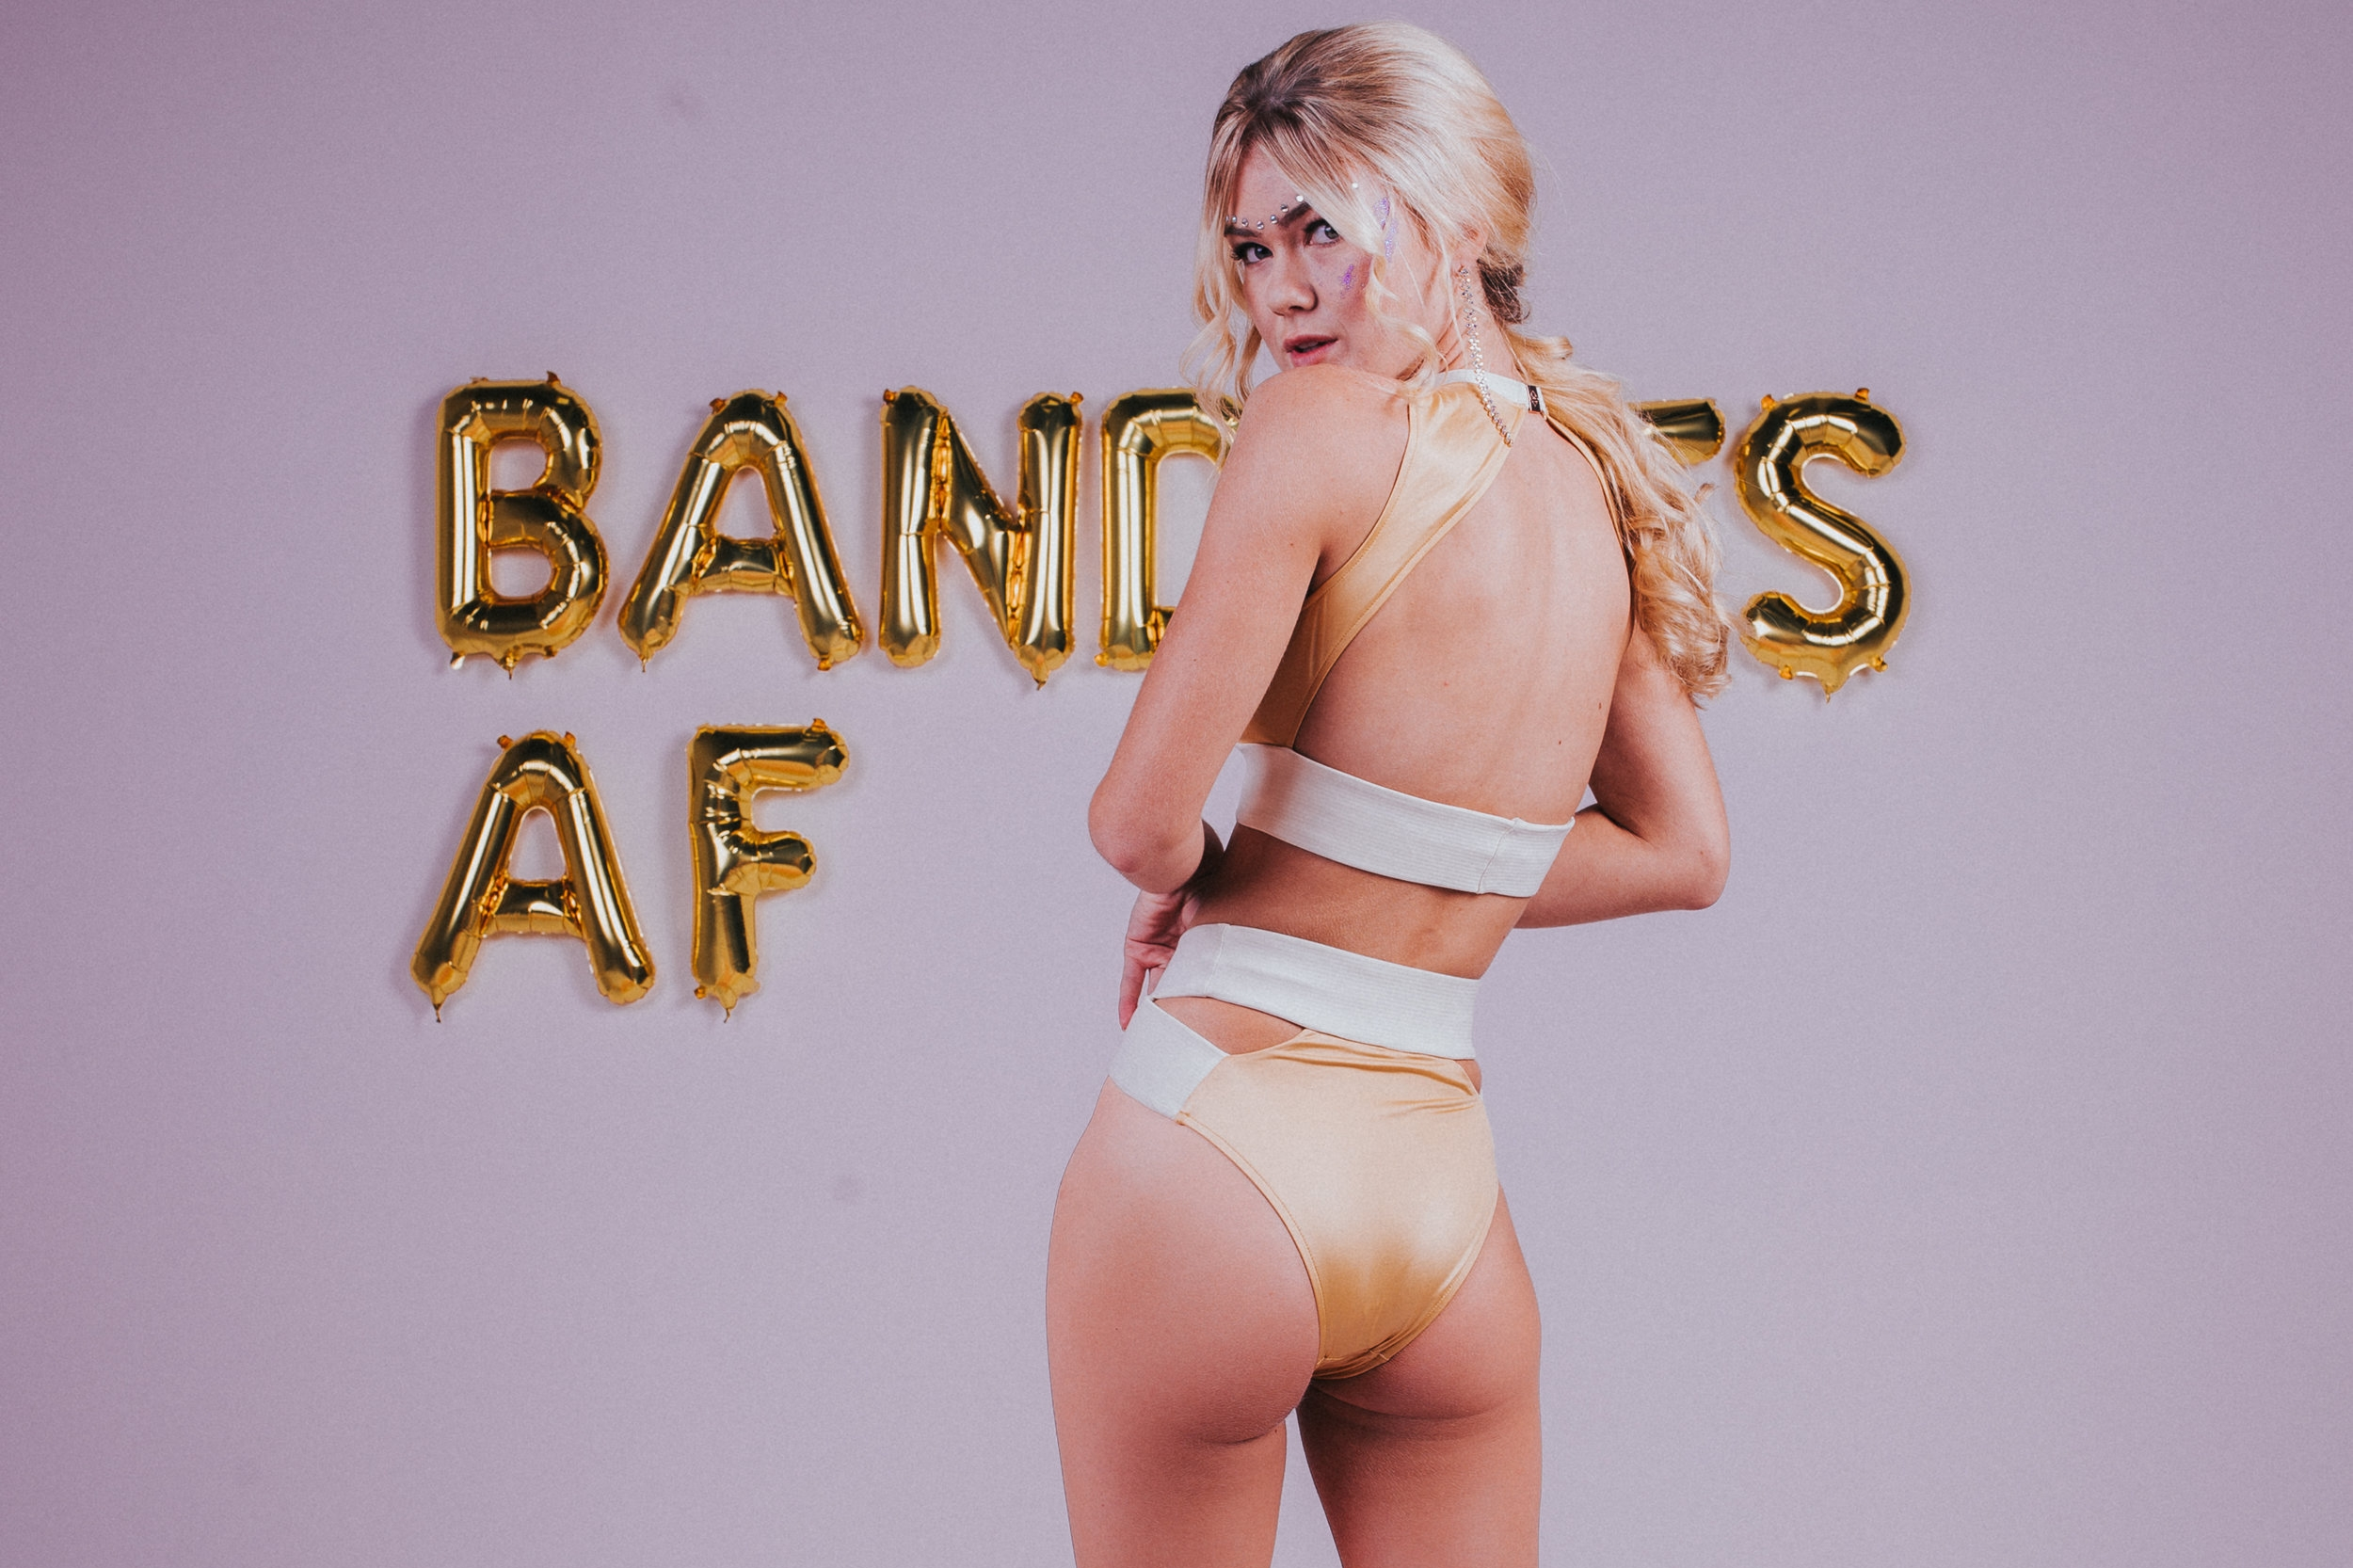 Good Vibes & Bandits - What do you get when you mix groovy balloon inspo from DIY blog @ohhappyday, smokin' babes from Modern Muse Models in Orlando and rad photographer Graham Oakley? Good Vibes that are BANDITS AF.